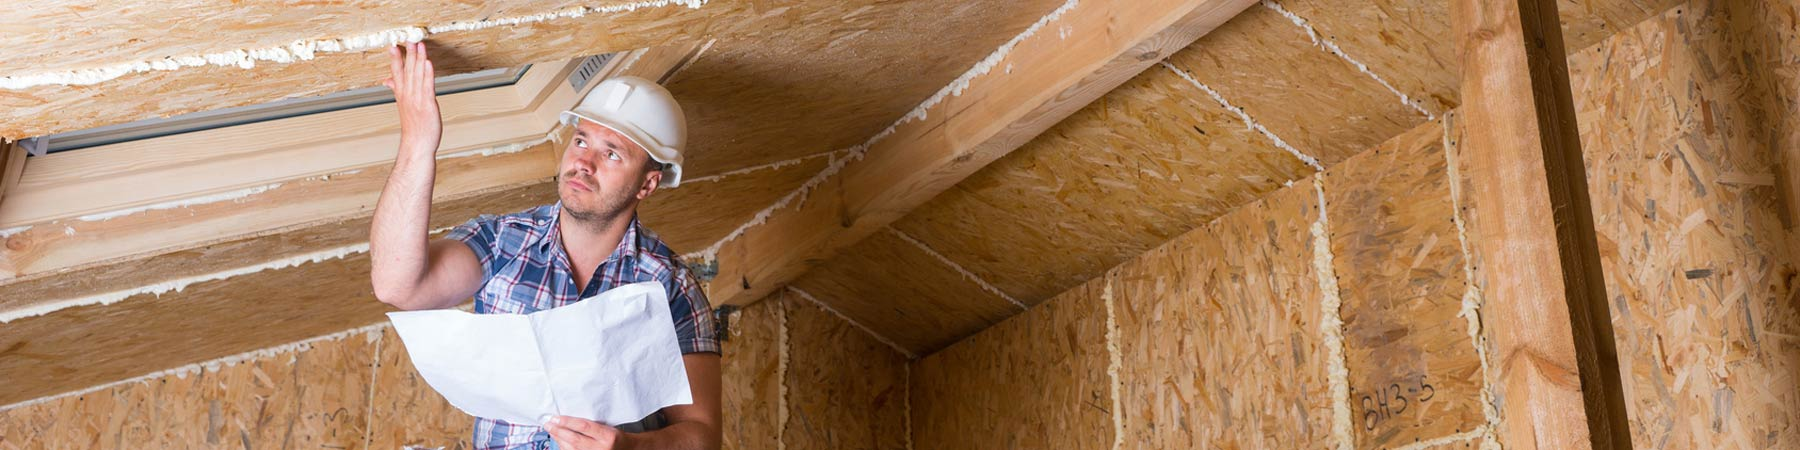 residential home inspector checking attic insulation